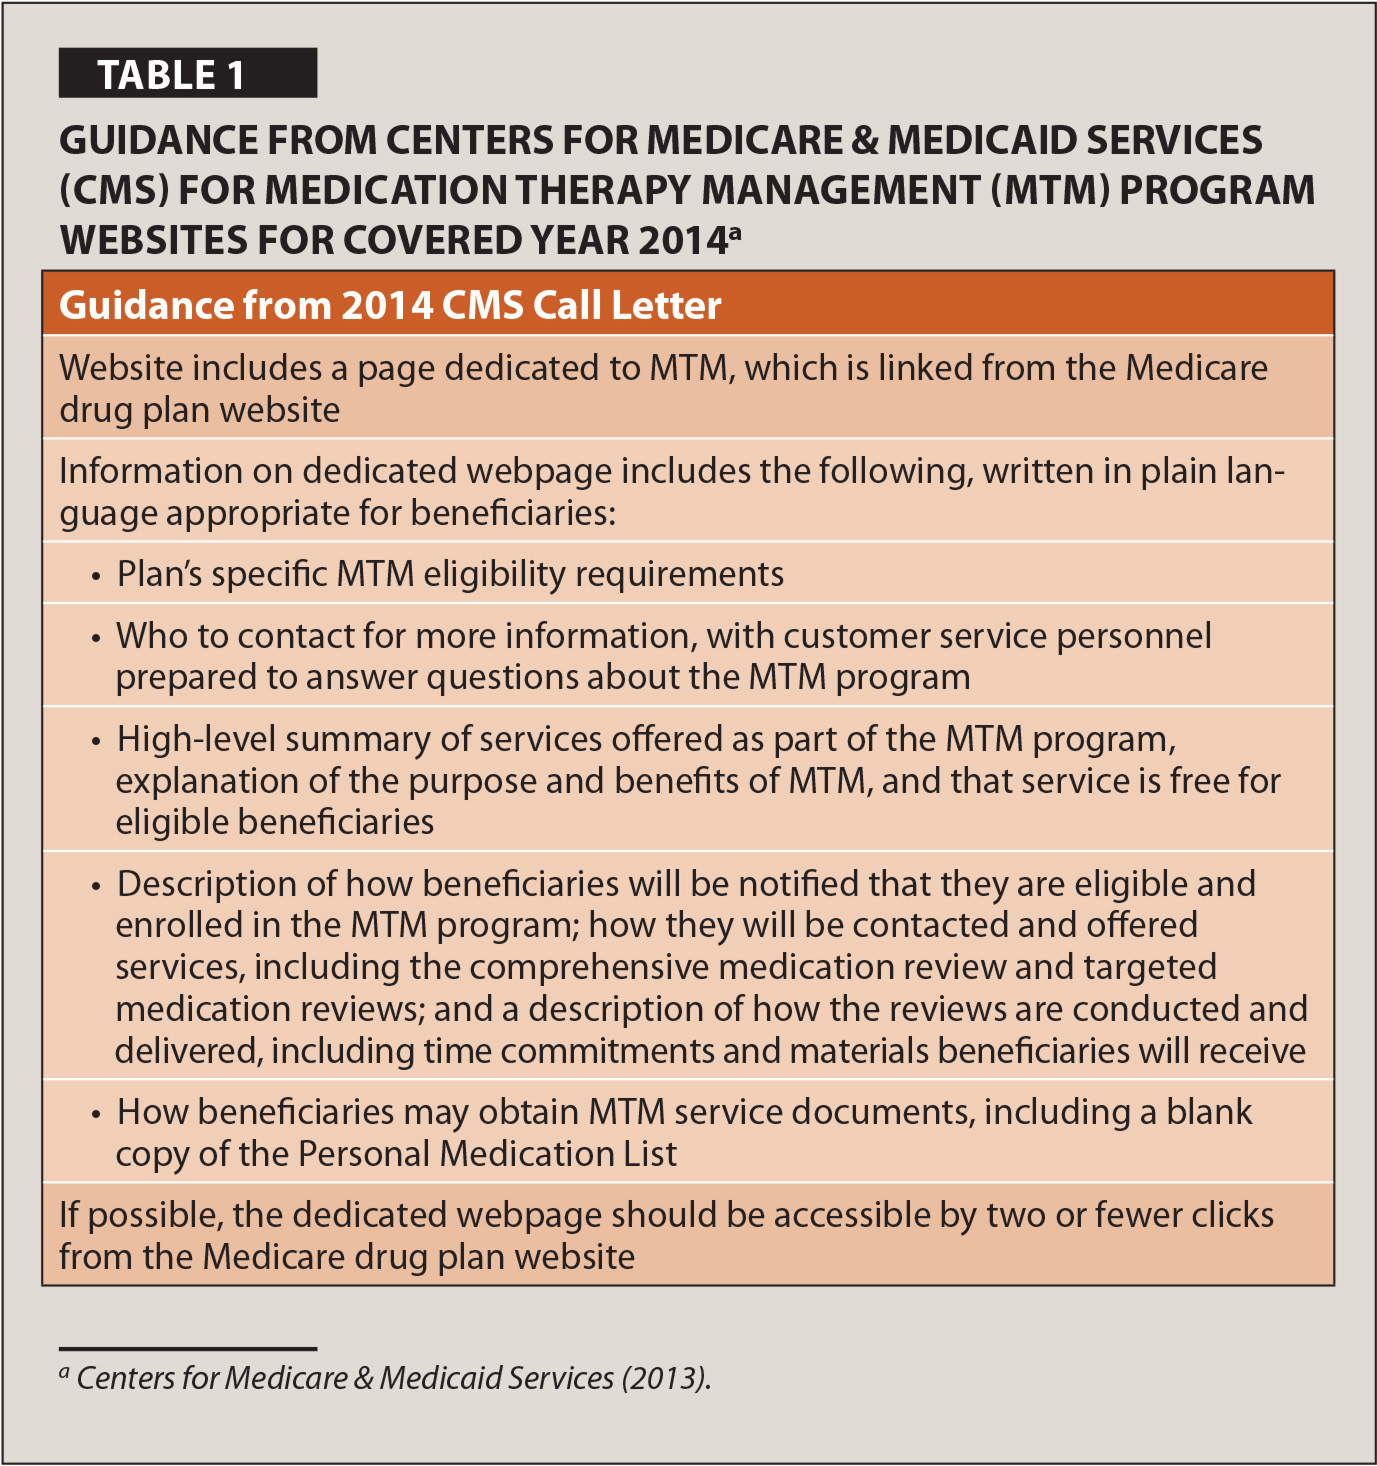 Guidance from Centers for Medicare & Medicaid Services (CMS) for Medication Therapy Management (MTM) Program Websites for Covered Year 2014a